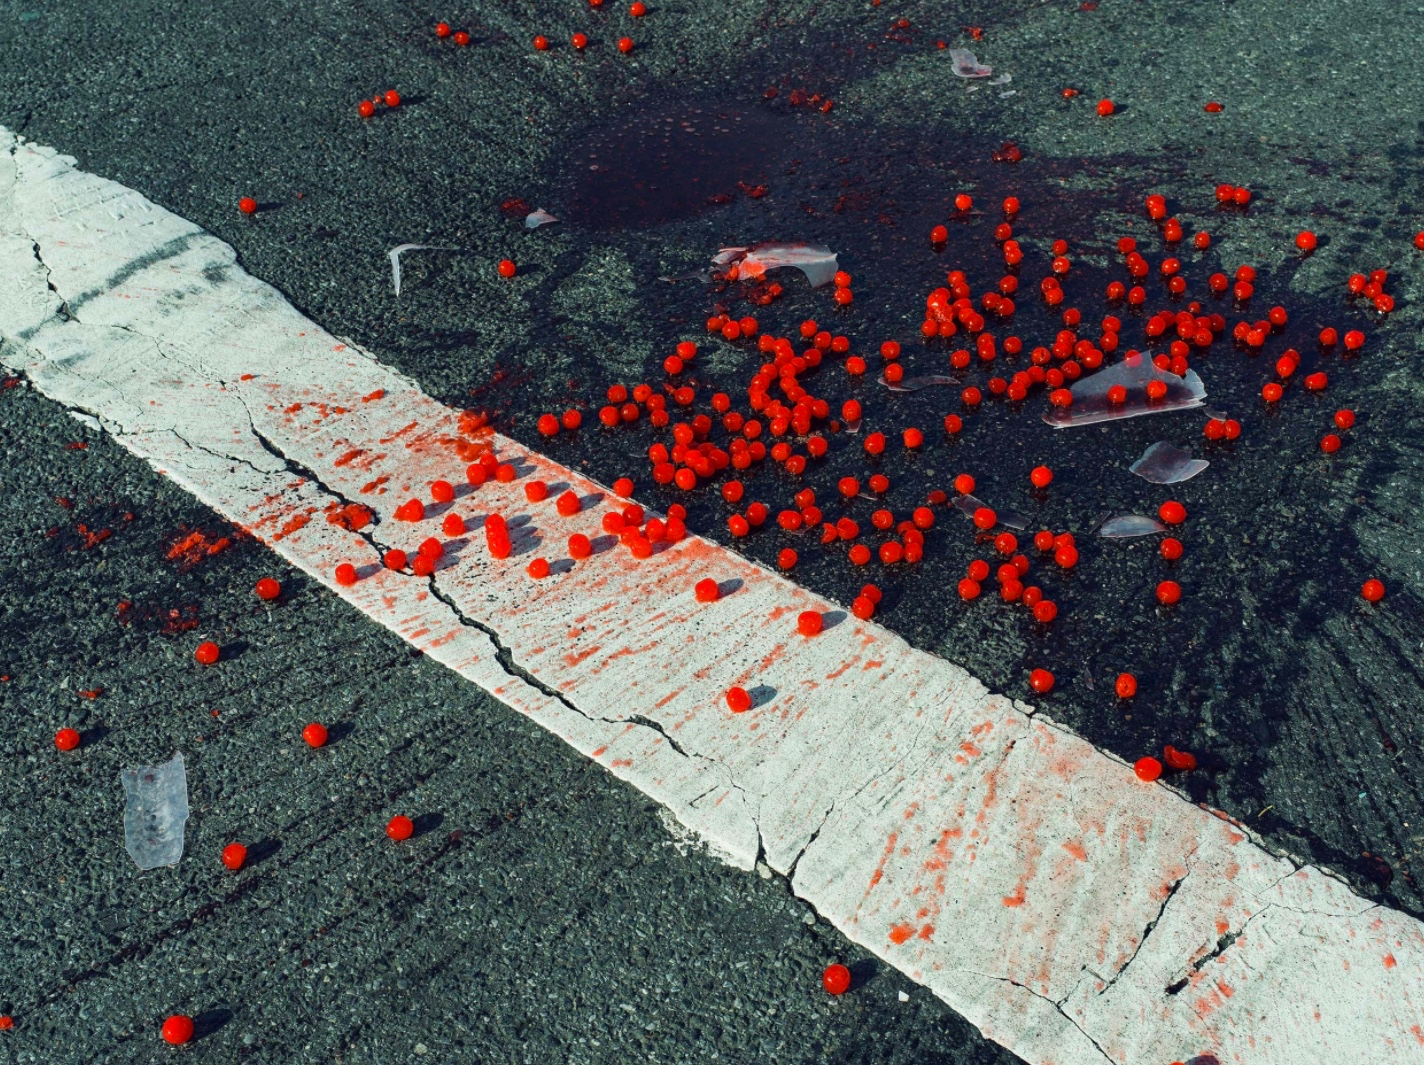 CHRISTOPHER ANDERSON, CHERRIES SPILLED ON CROSSWALK, NEW YORK CITY, USA, 2014